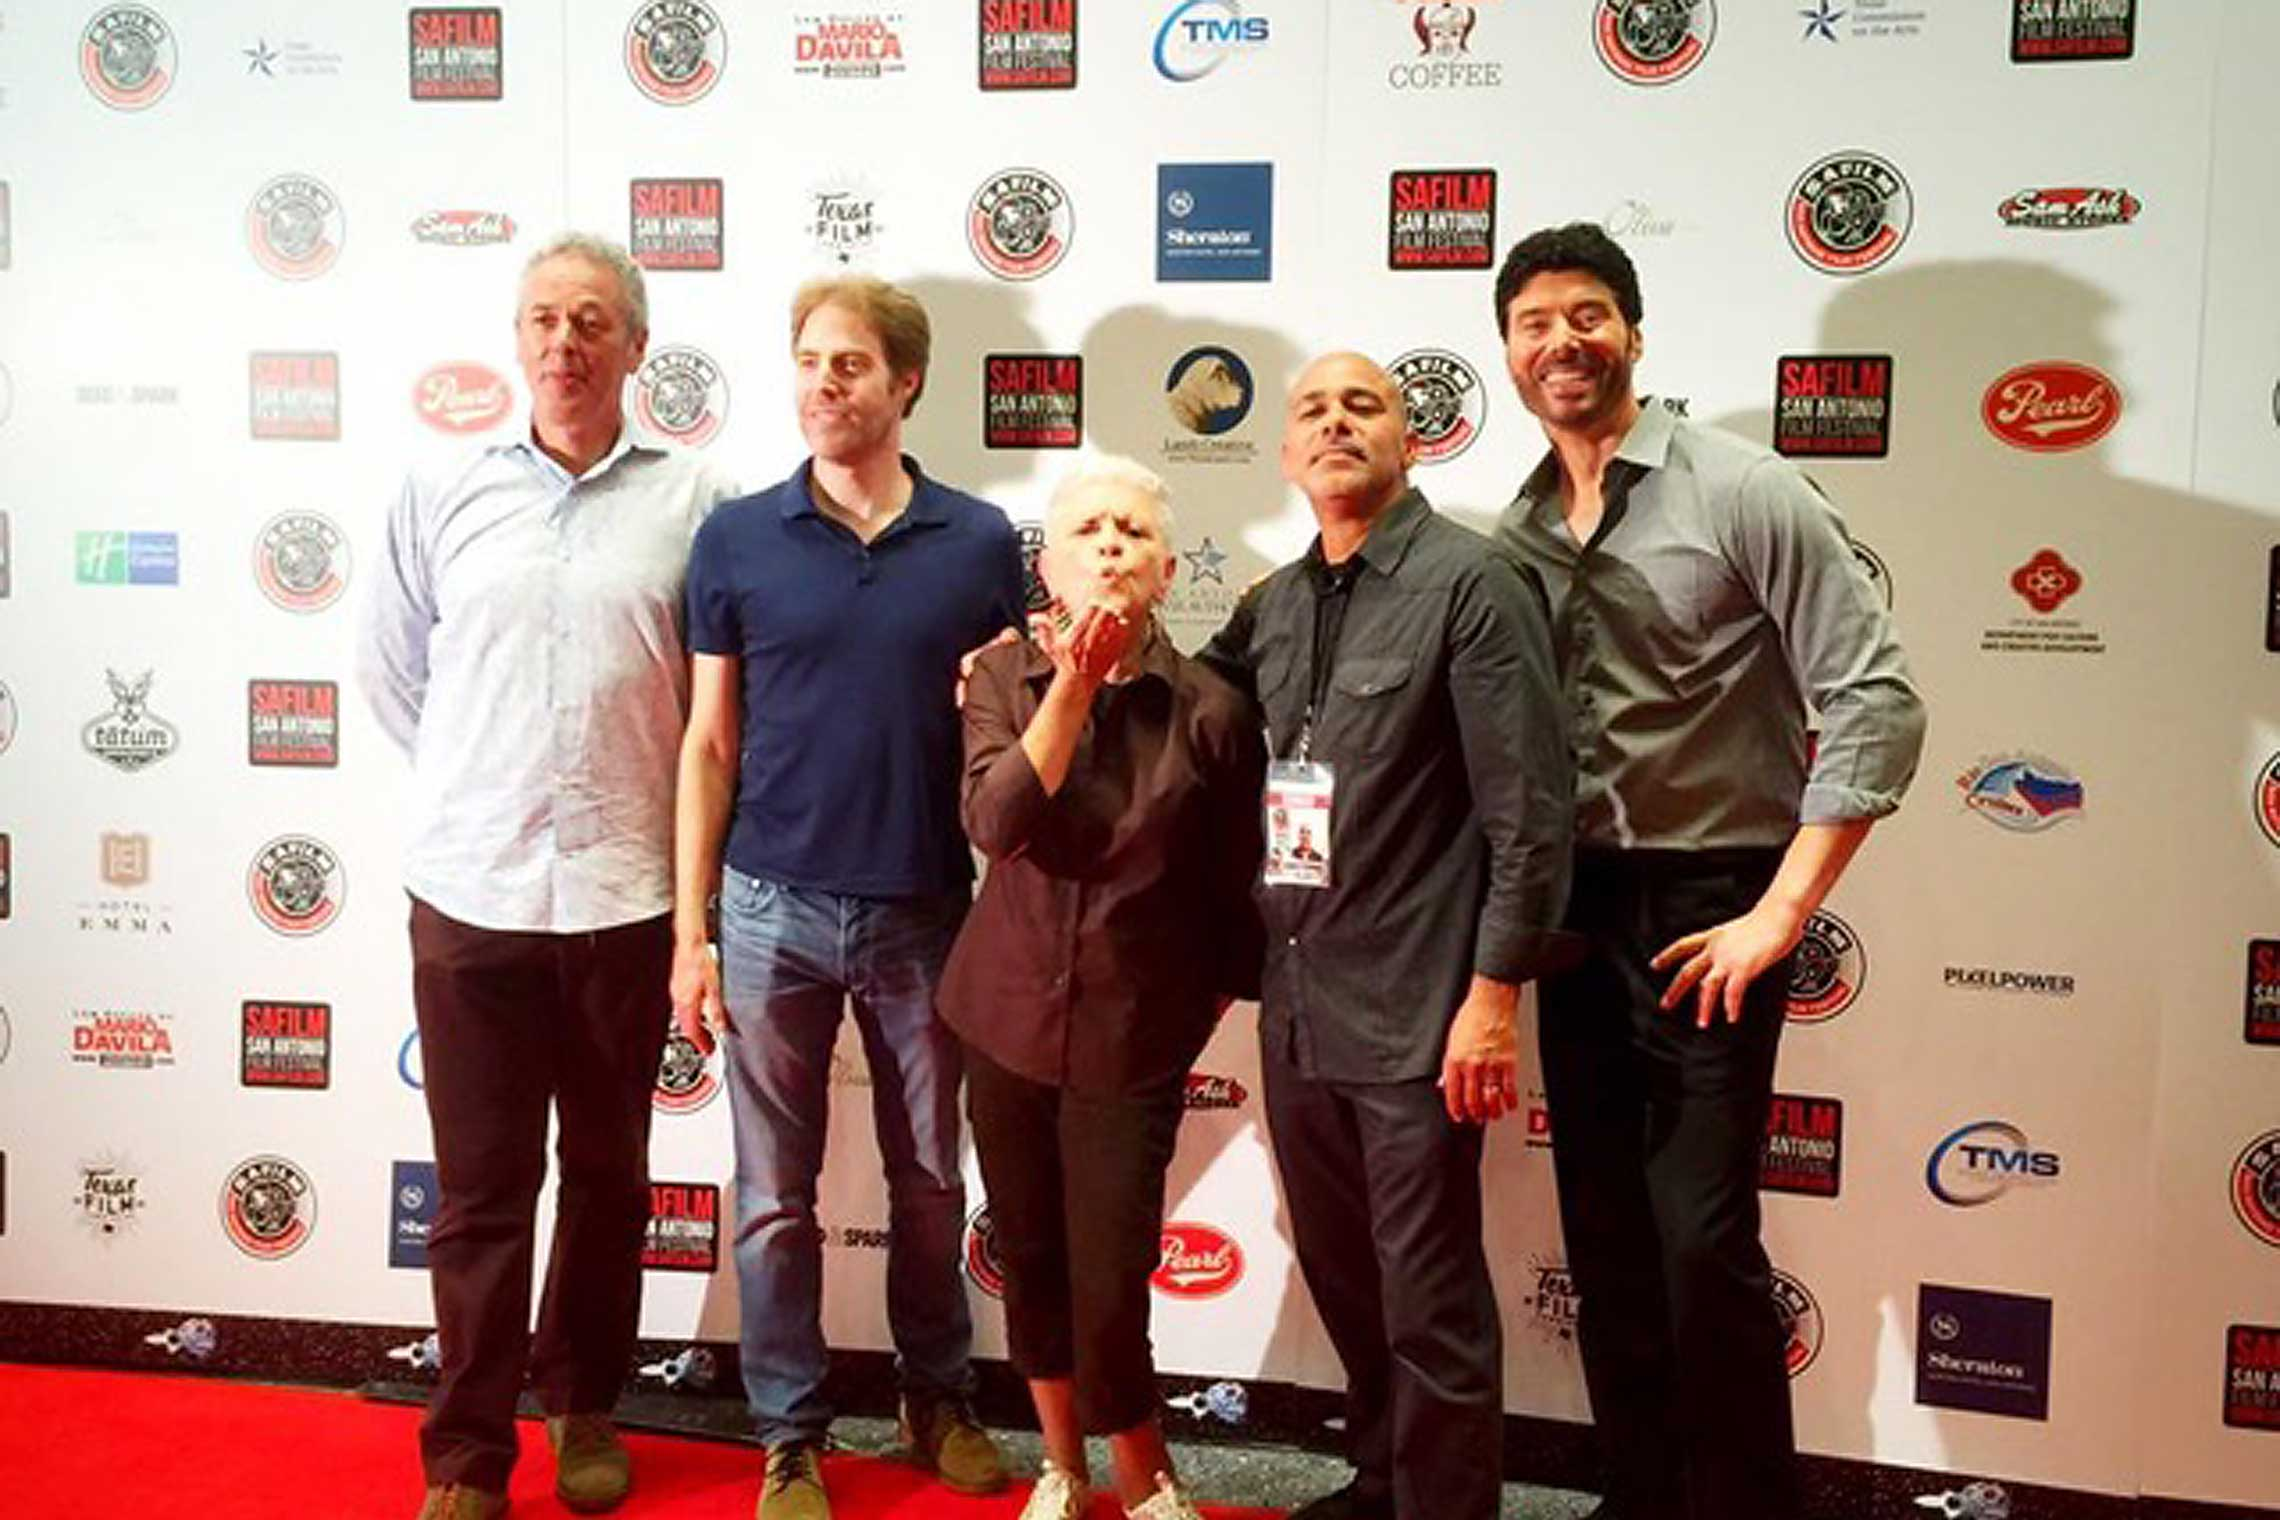 Producer John Cook, writer Hanz Wasserburger, star Lana Dieterich, director Wallace Weatherspoon and Benjamin Dane.